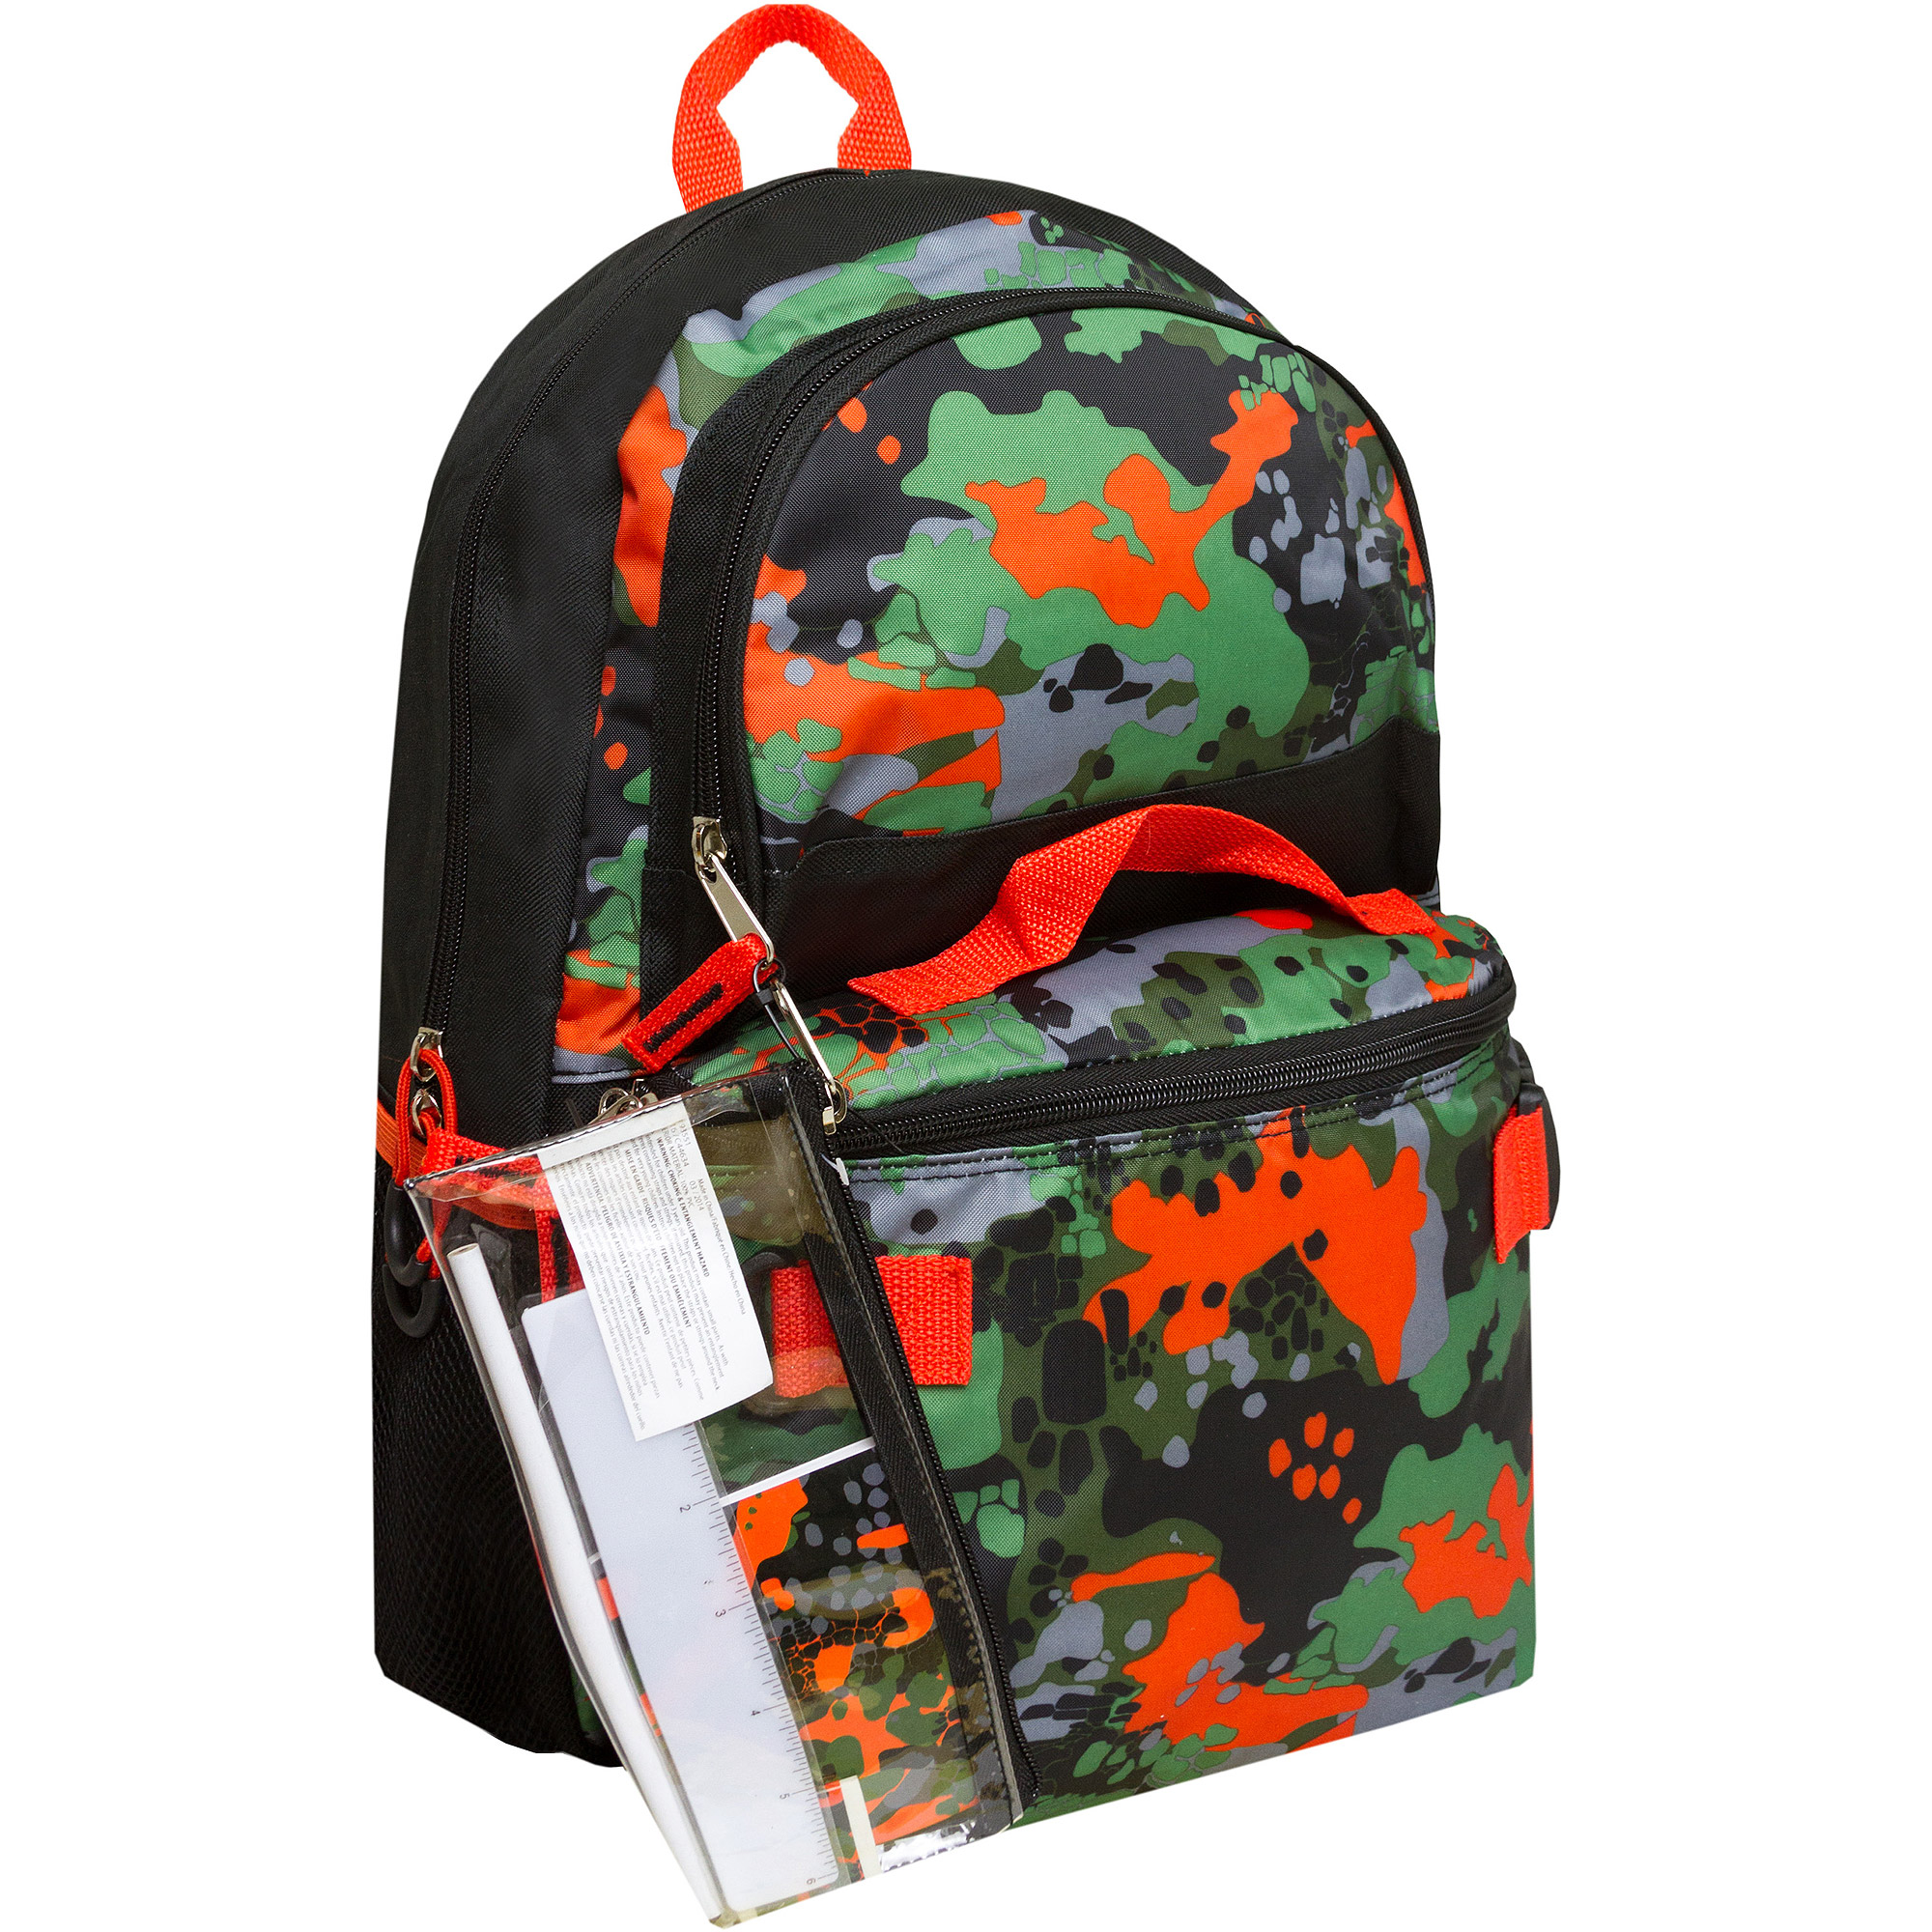 "Triple Pocket 17"" Rainforest Camo Print Backpack with Pencil Case and Lunch Bag"